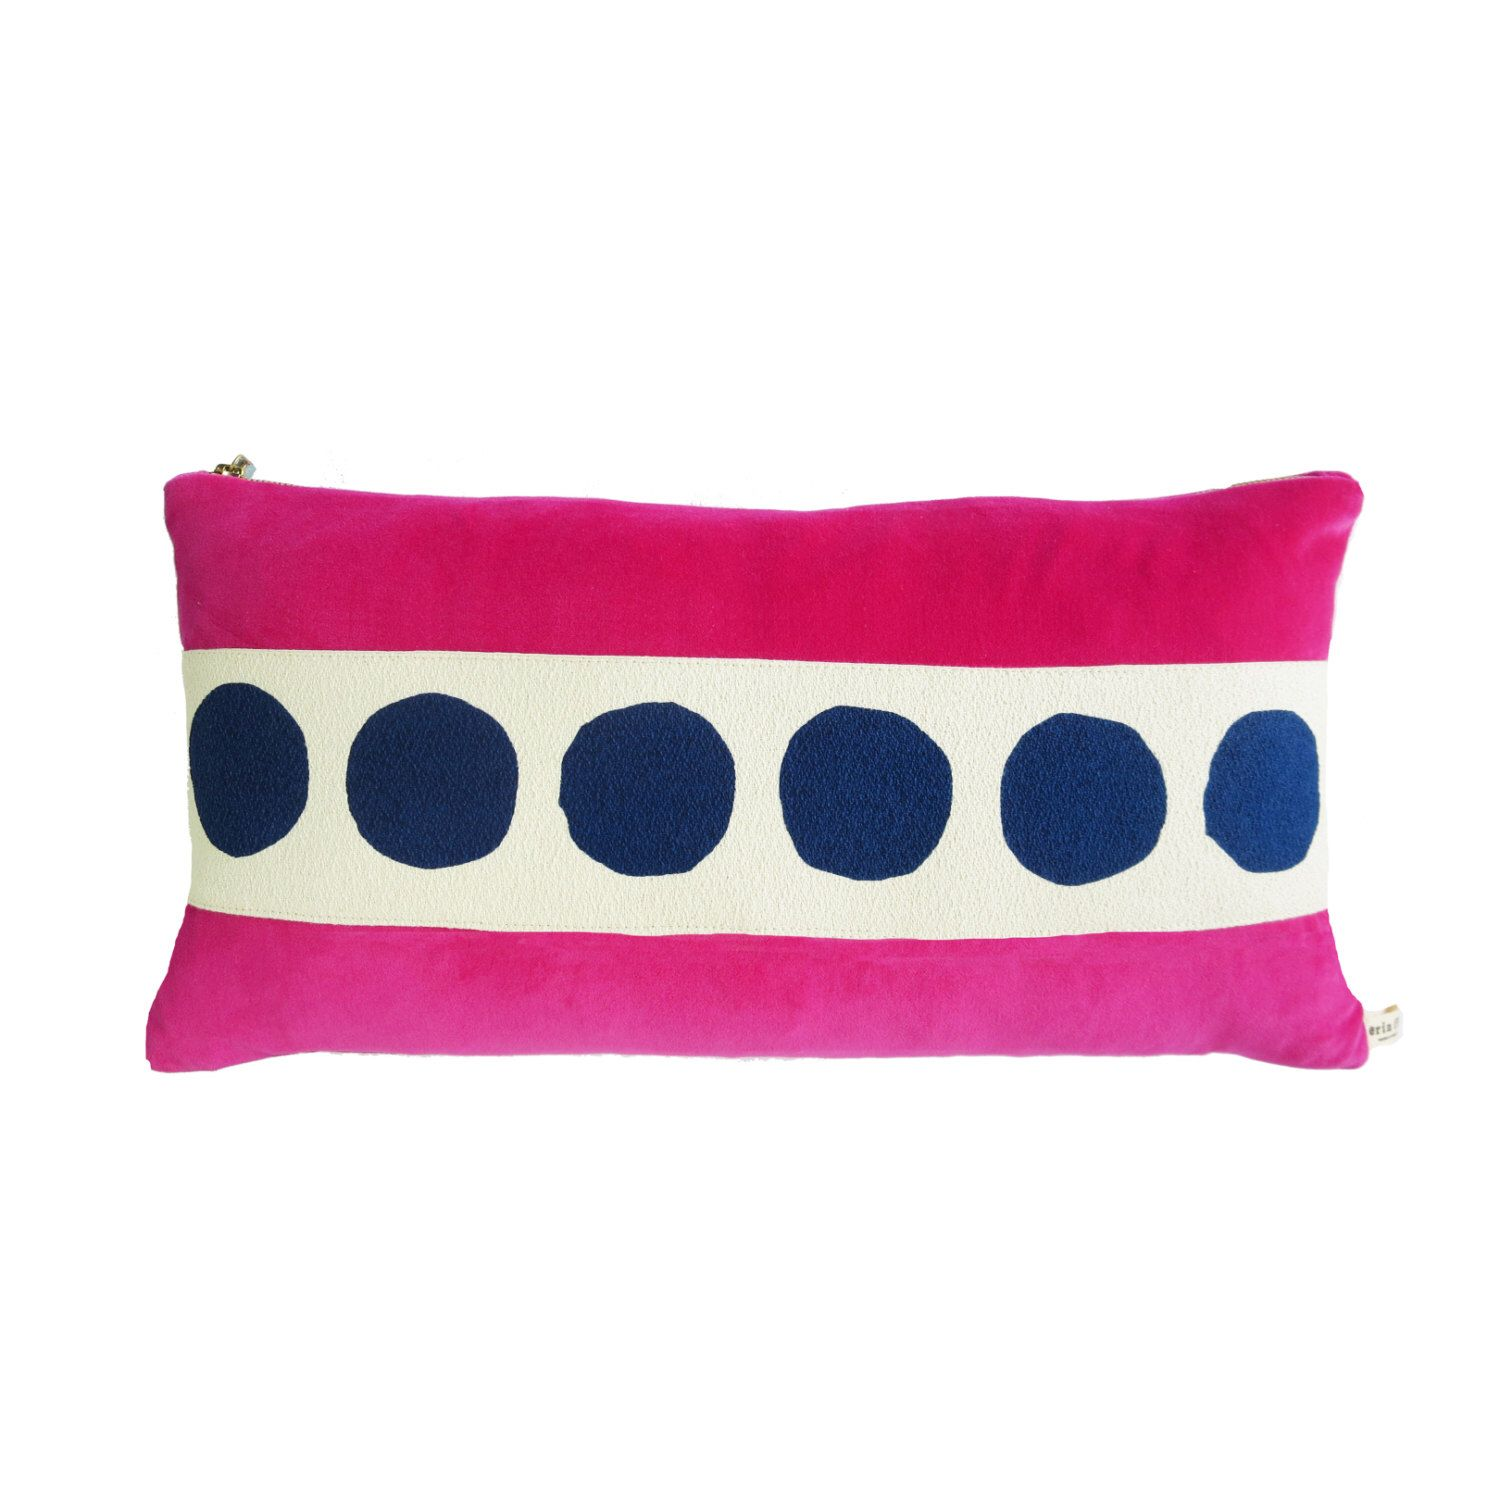 Hot pink velvet pillow with hand printed navy circle trim